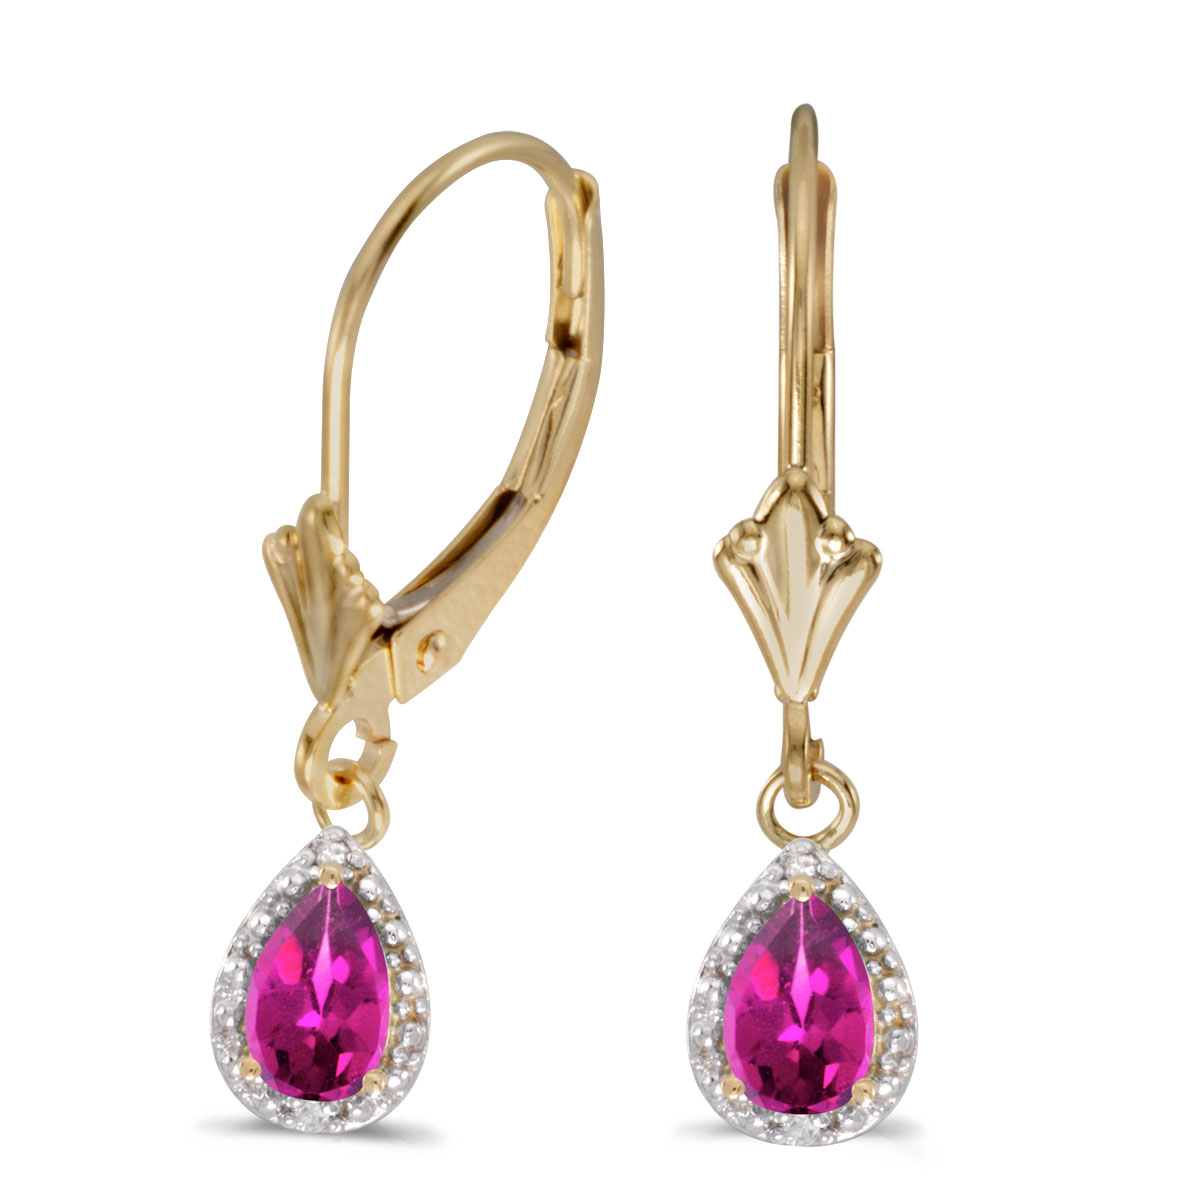 6x4 mm pear pink topaz dangle in 10k yellow gold with shimmering diamond accents.